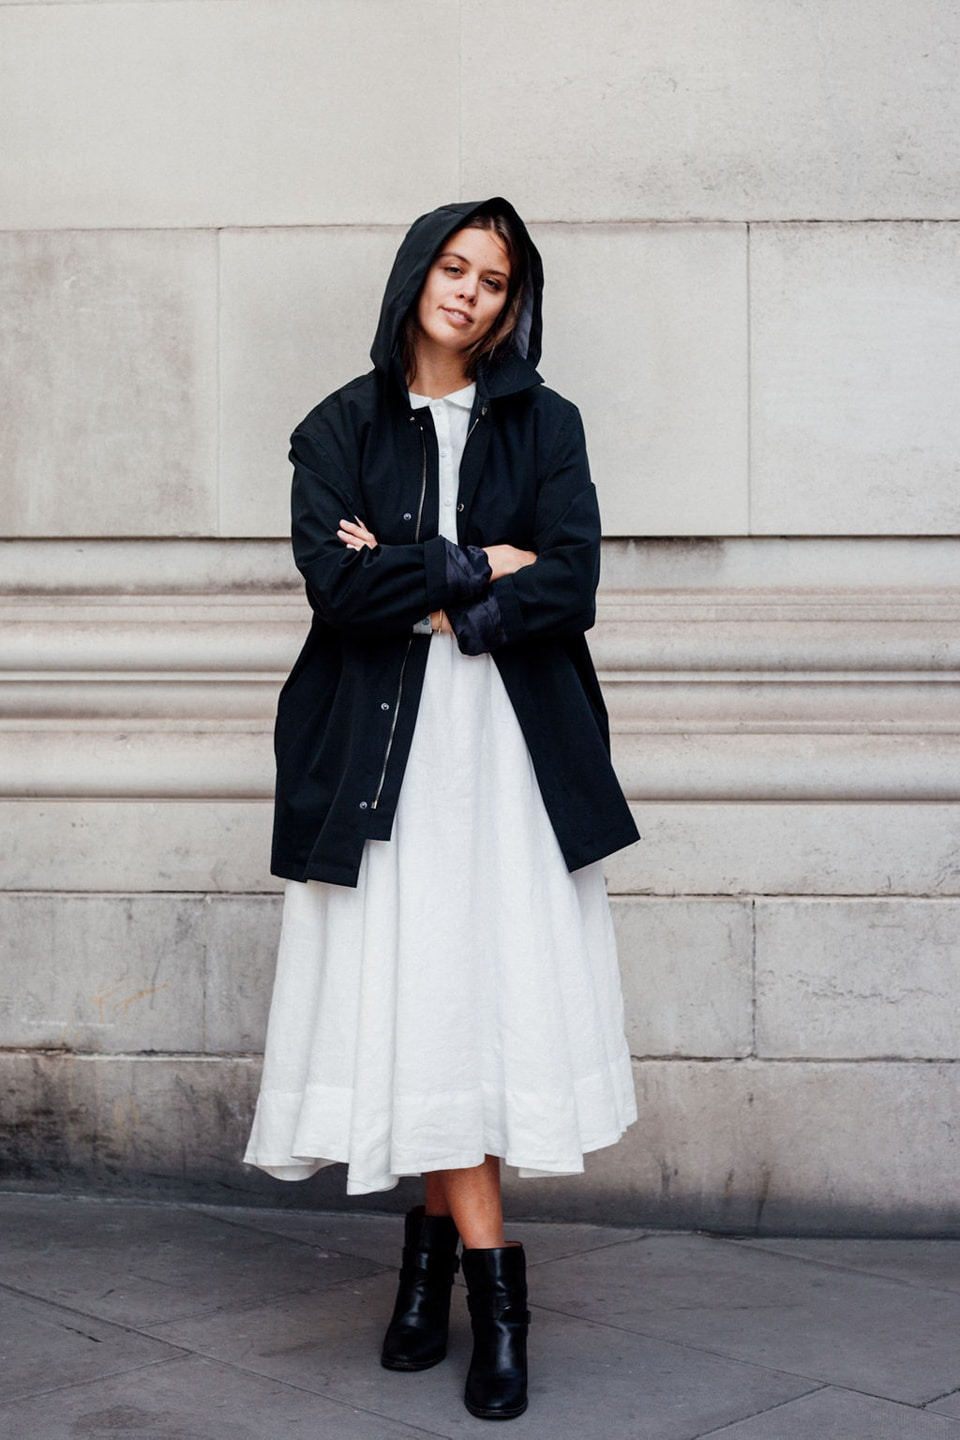 Jil wears white dress with black hooded coat